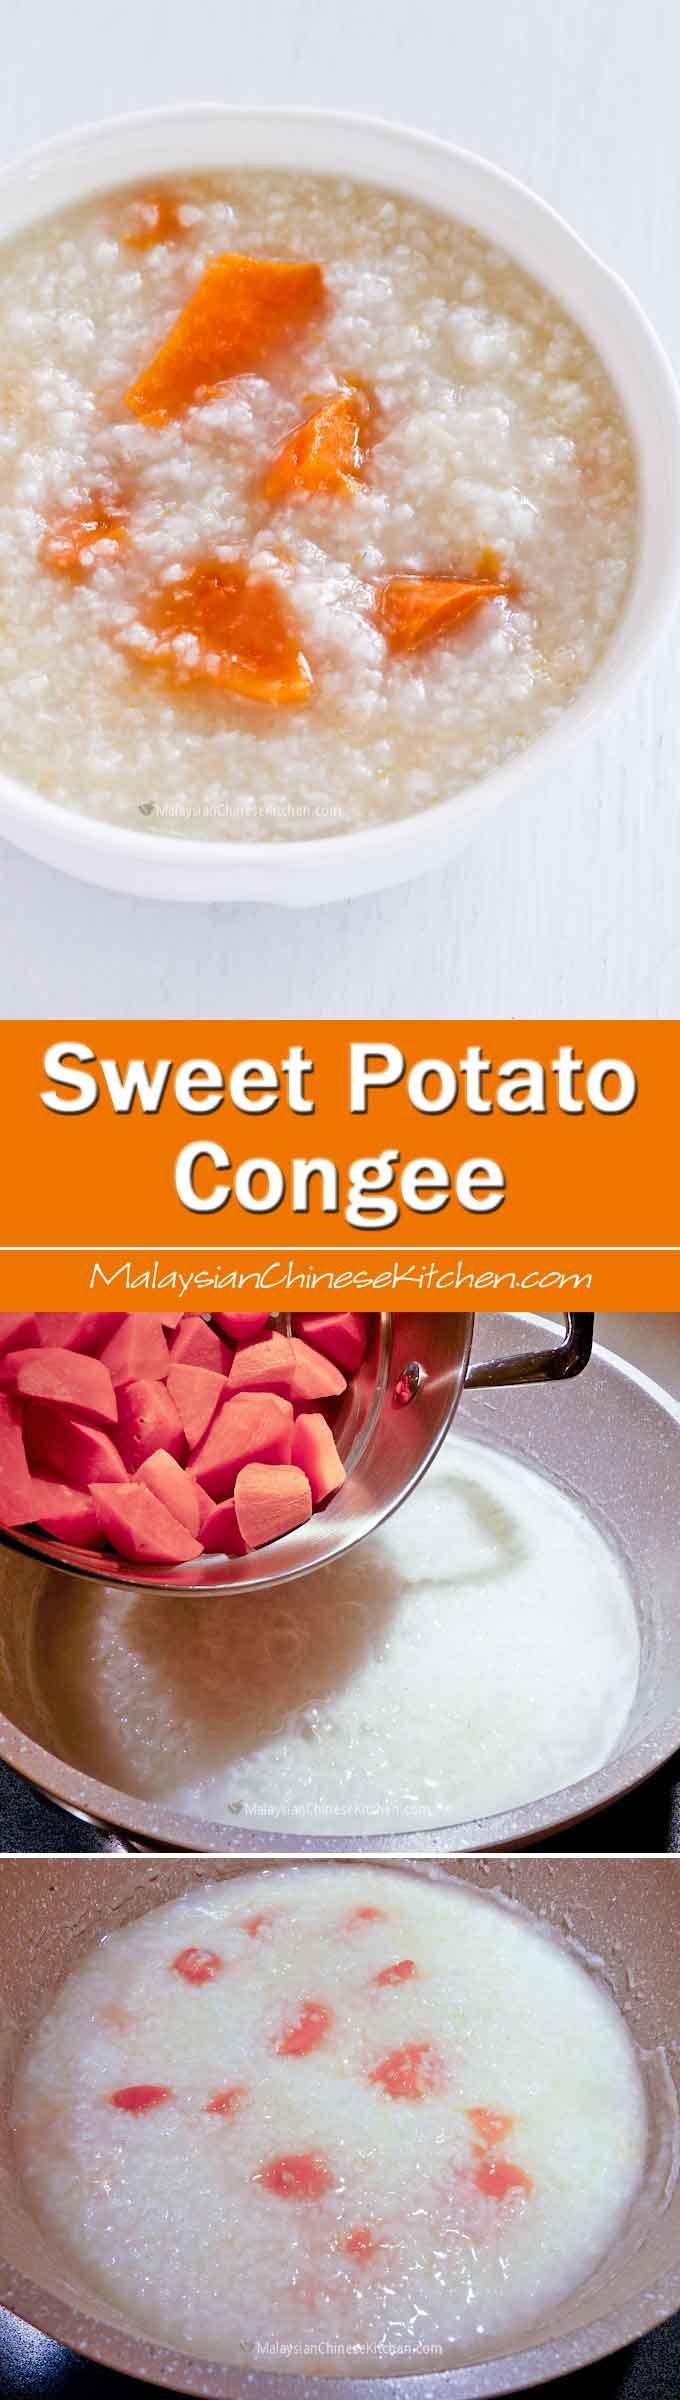 Sweet Potato Congee is a Hokkien staple consisting of plain rice porridge and tender sweet potatoes. Usually eaten with side dishes and condiments. | MalaysianChineseKitchen.com